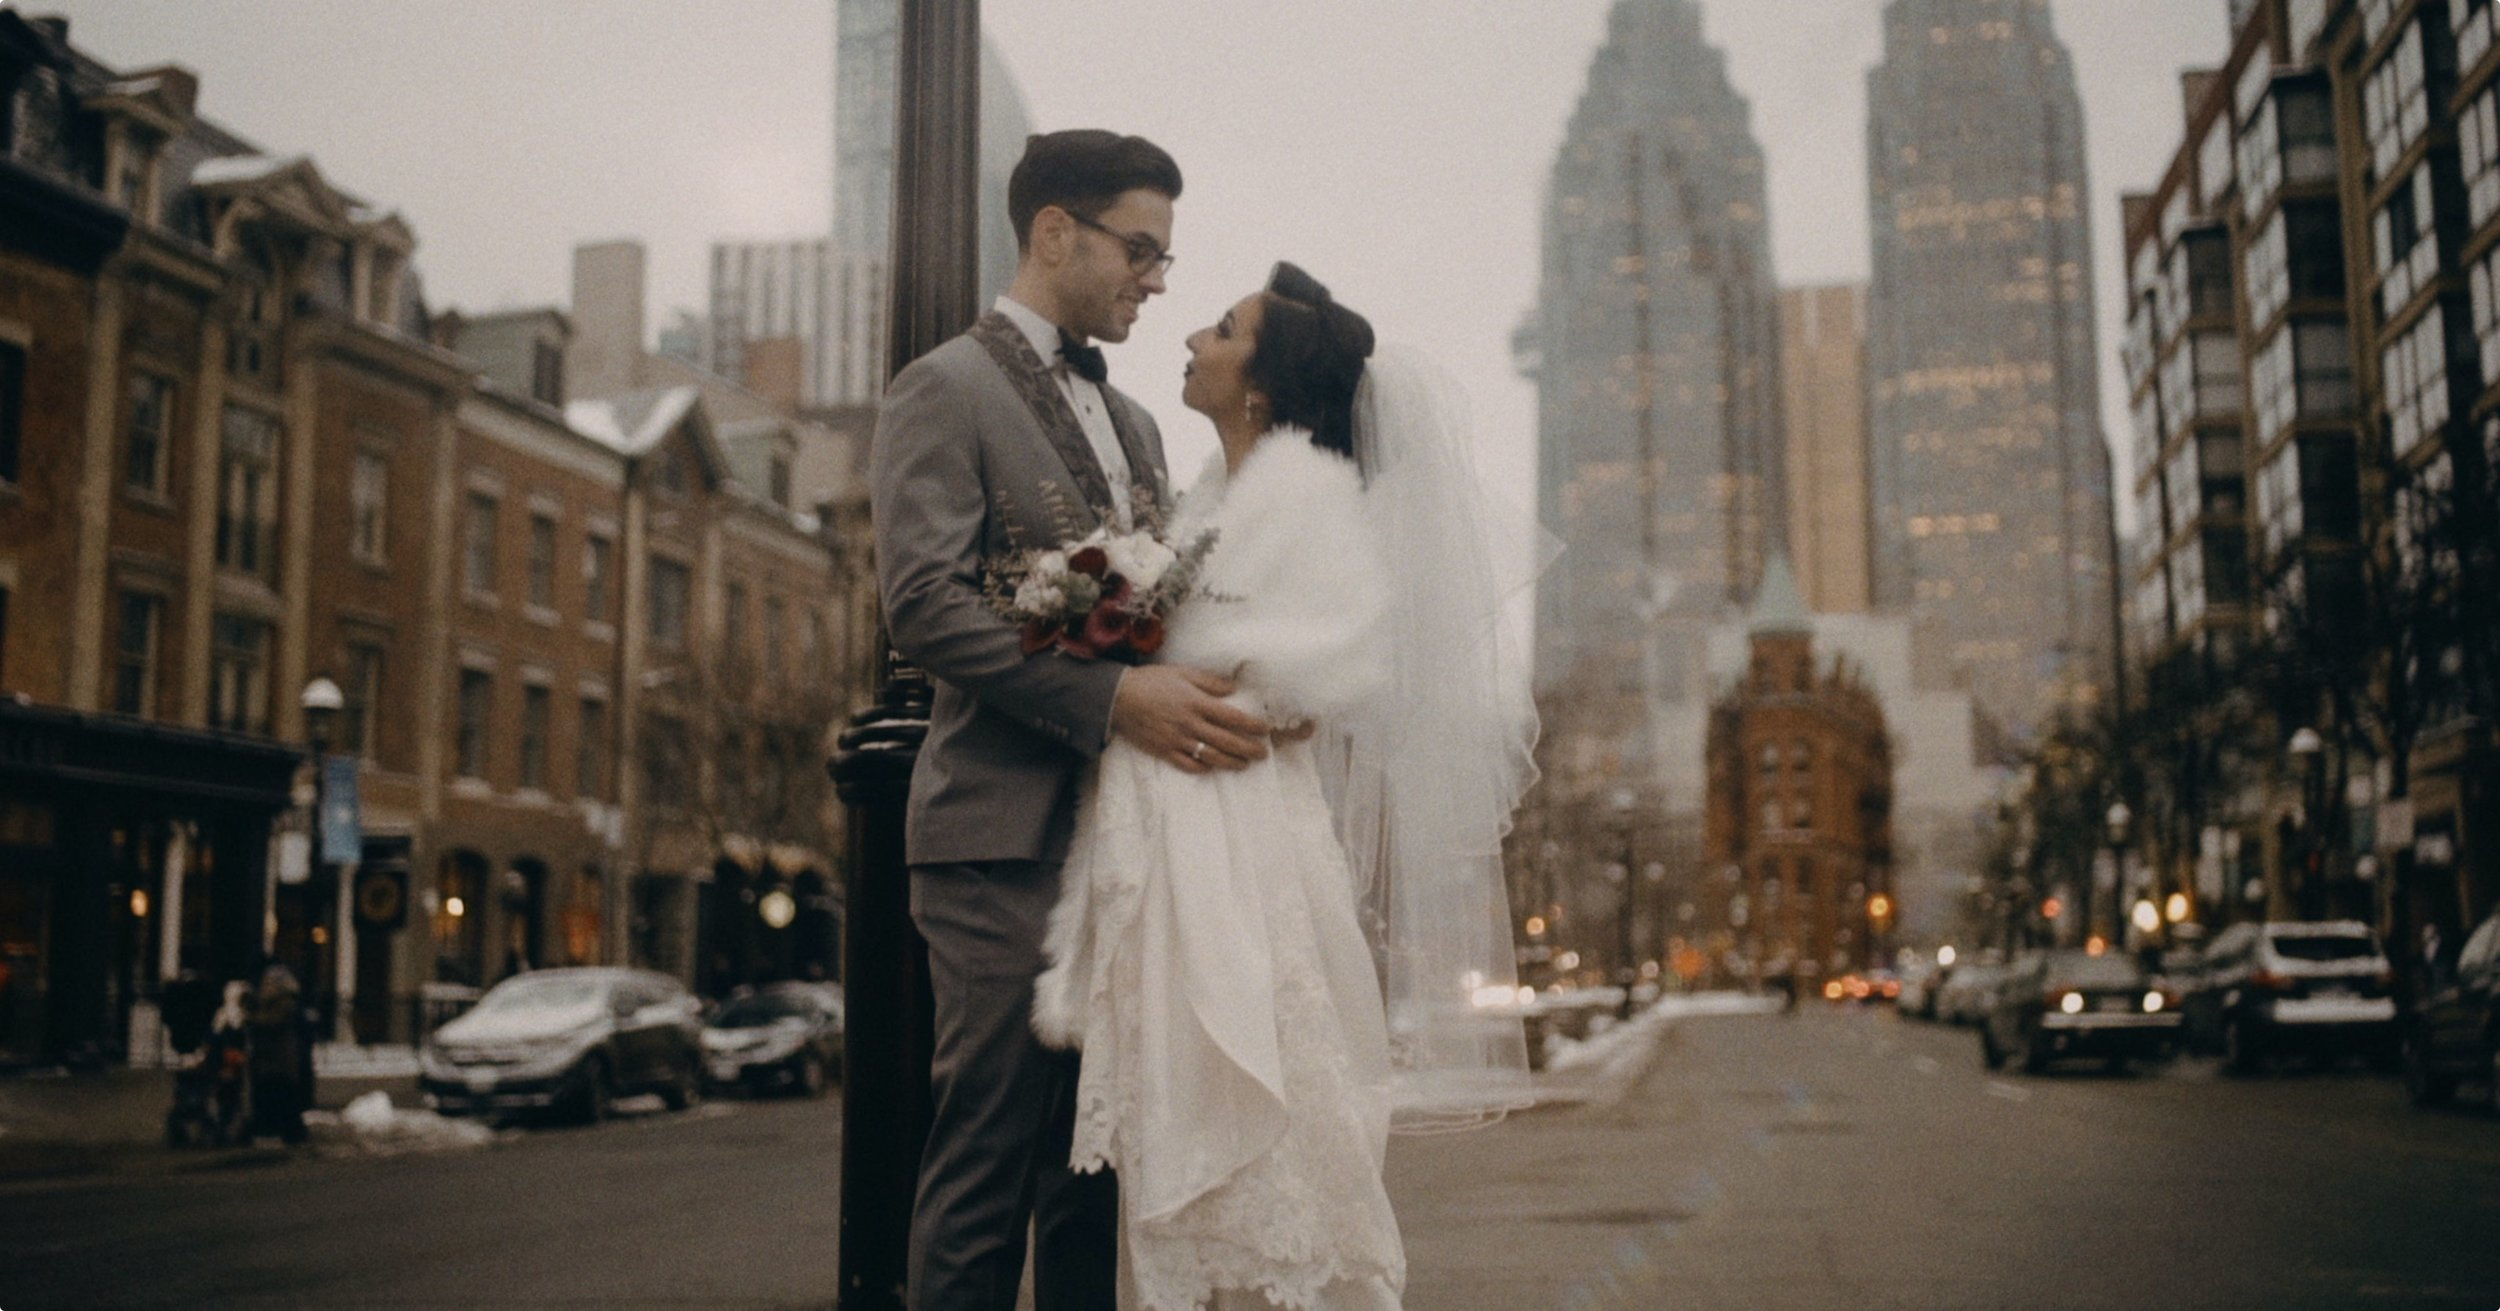 How To Love, What Is Love, Top Wedding Videographer, Top Canadian Wedding Videographer, Top Ontario Wedding Videographer, Top Destination Wedding Video, Top Wedding Cinematographer, Destination Wedding Filmmaker, Destination Wedding Photographer, The Purpose Of Life, Top Relationship Advice, Woke Advice, Woke Relationship Advice, Woke Marriage Advice, Student Relationships